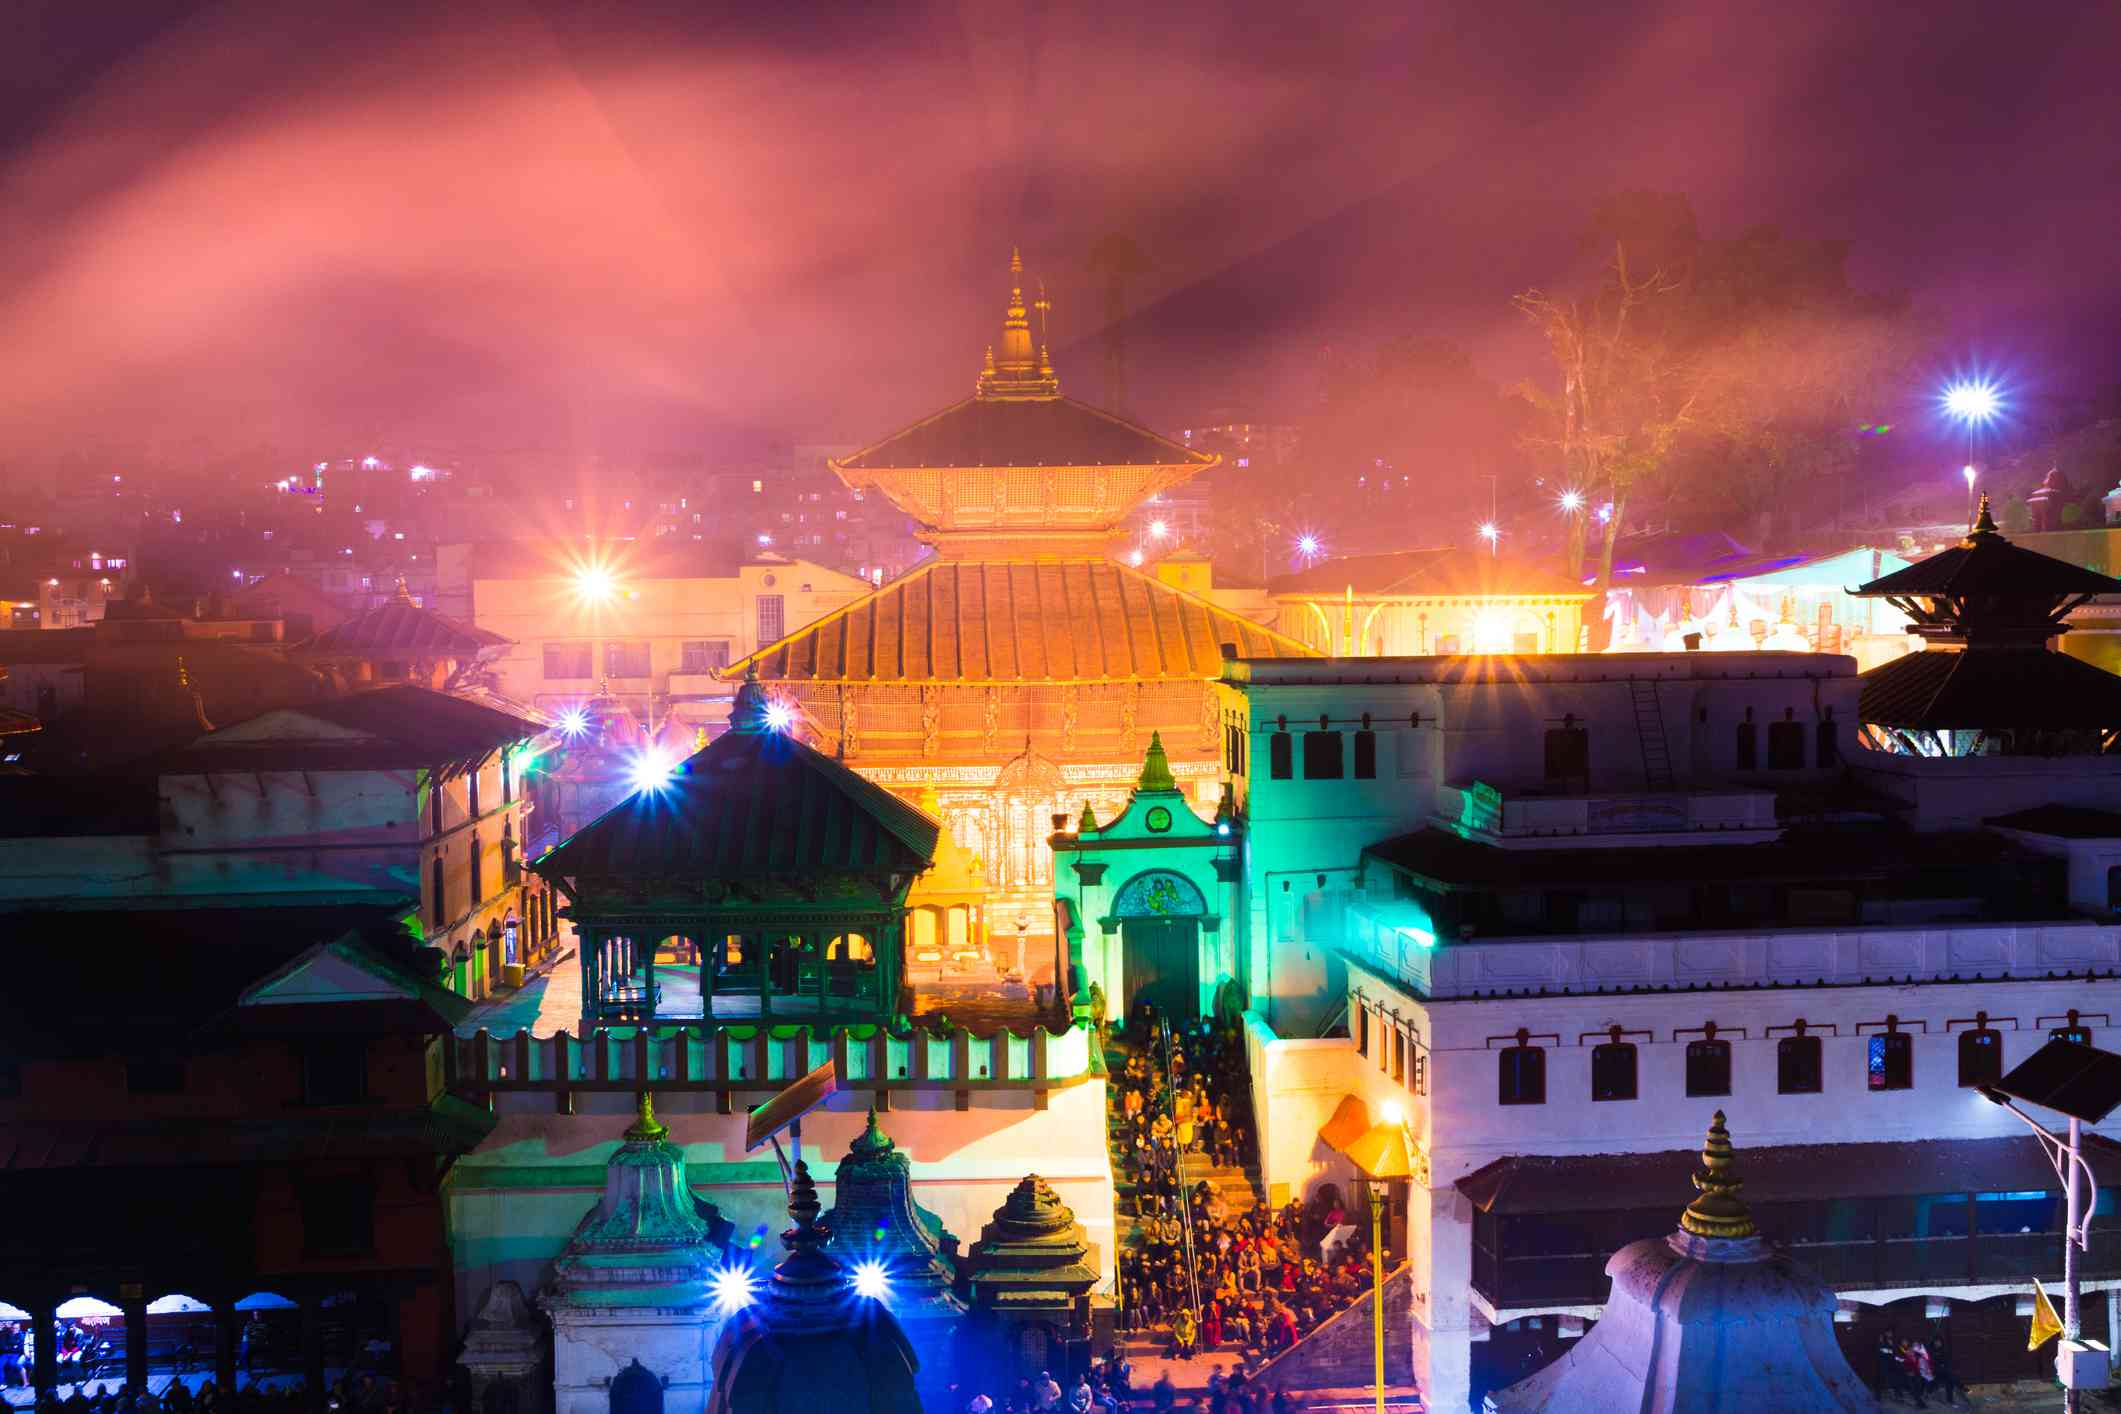 pagoda temples lit up at night with colorful lights